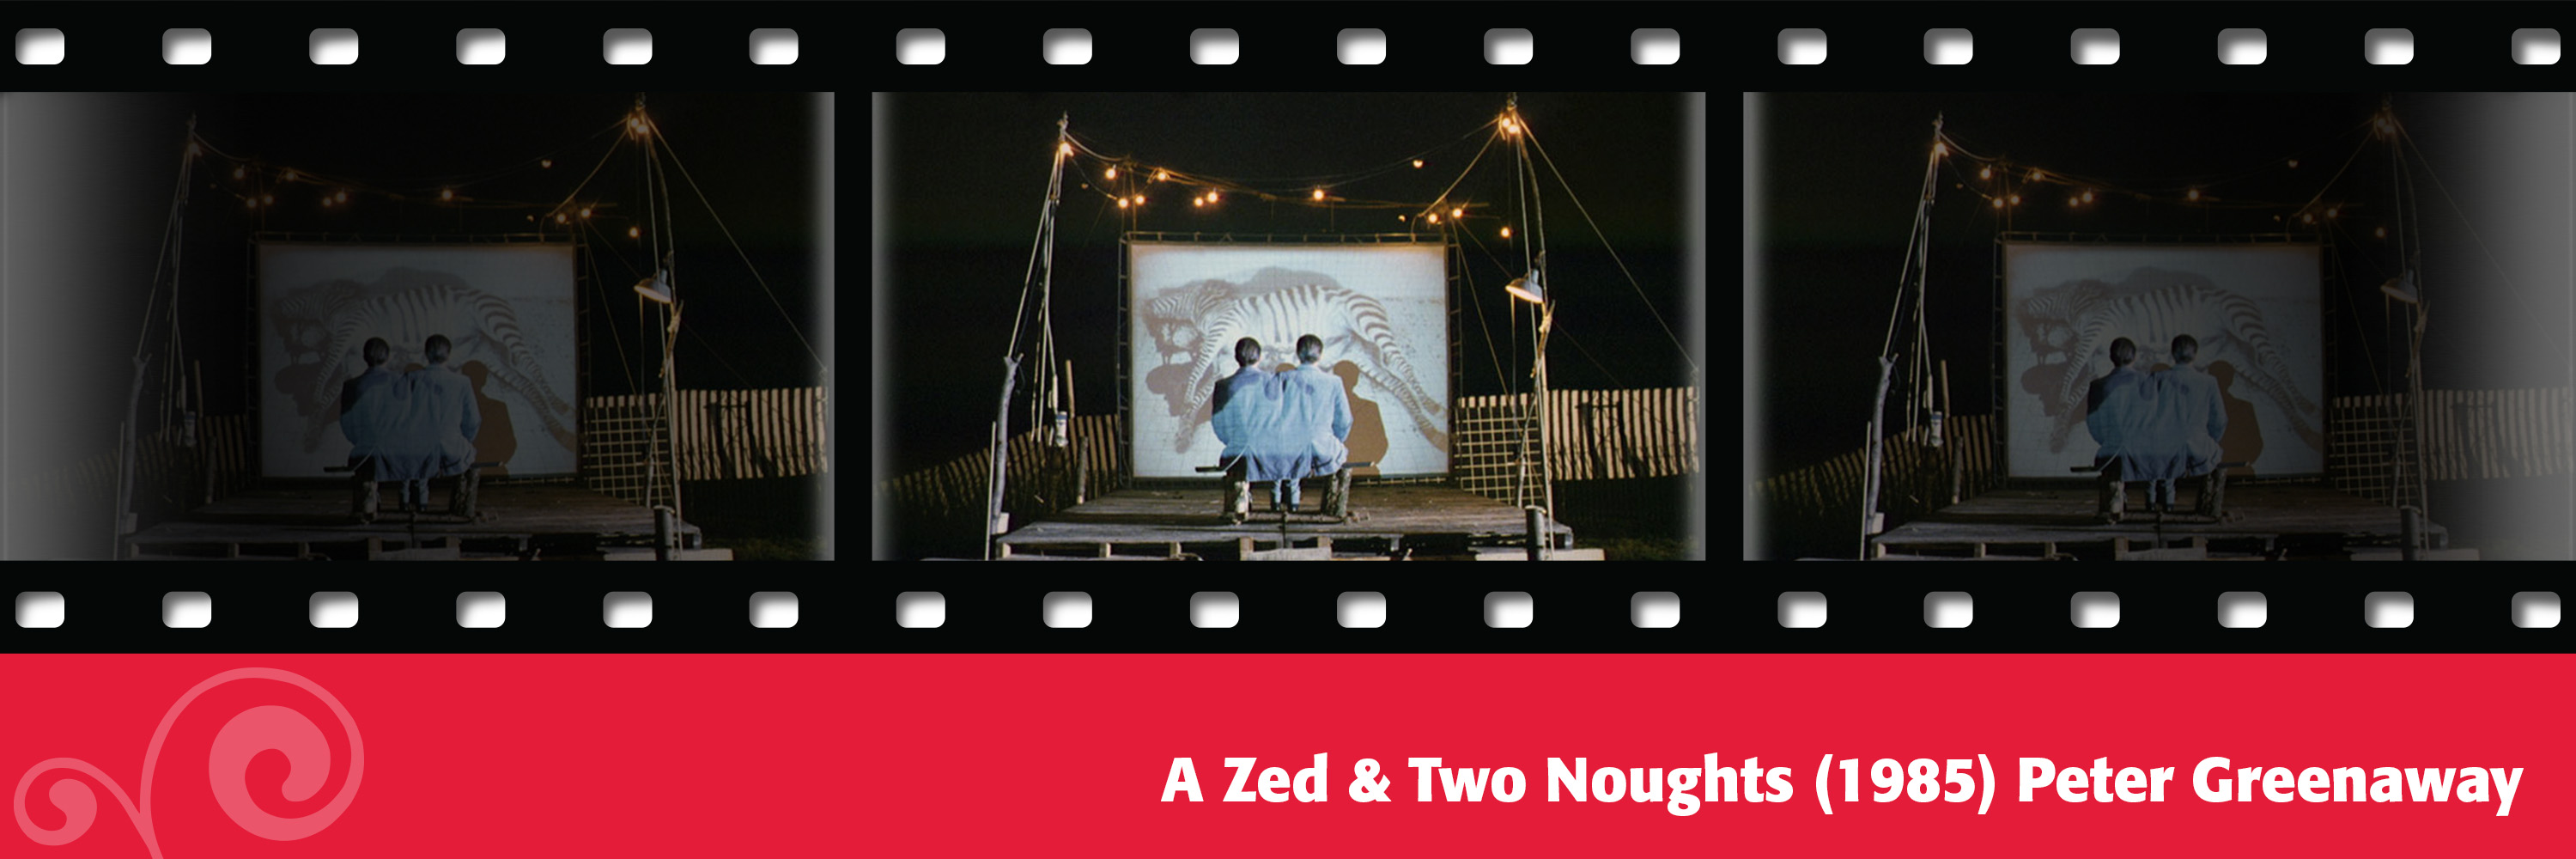 A Zed & Two Noughts (1985) Peter Greenway